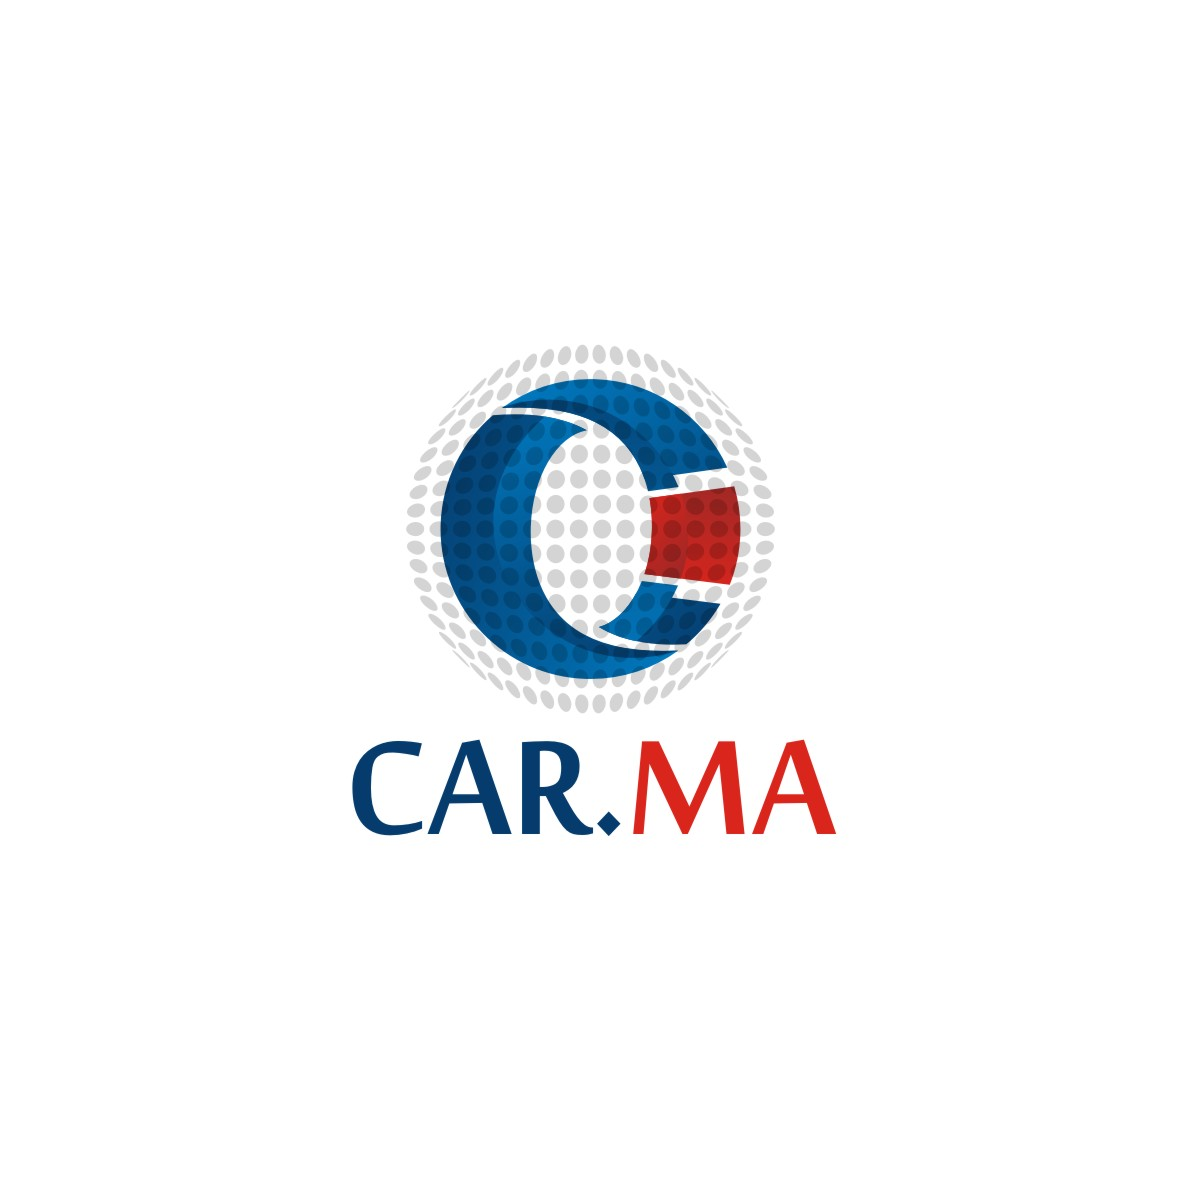 Logo Design by arteo_design - Entry No. 170 in the Logo Design Contest New Logo Design for car.ma.